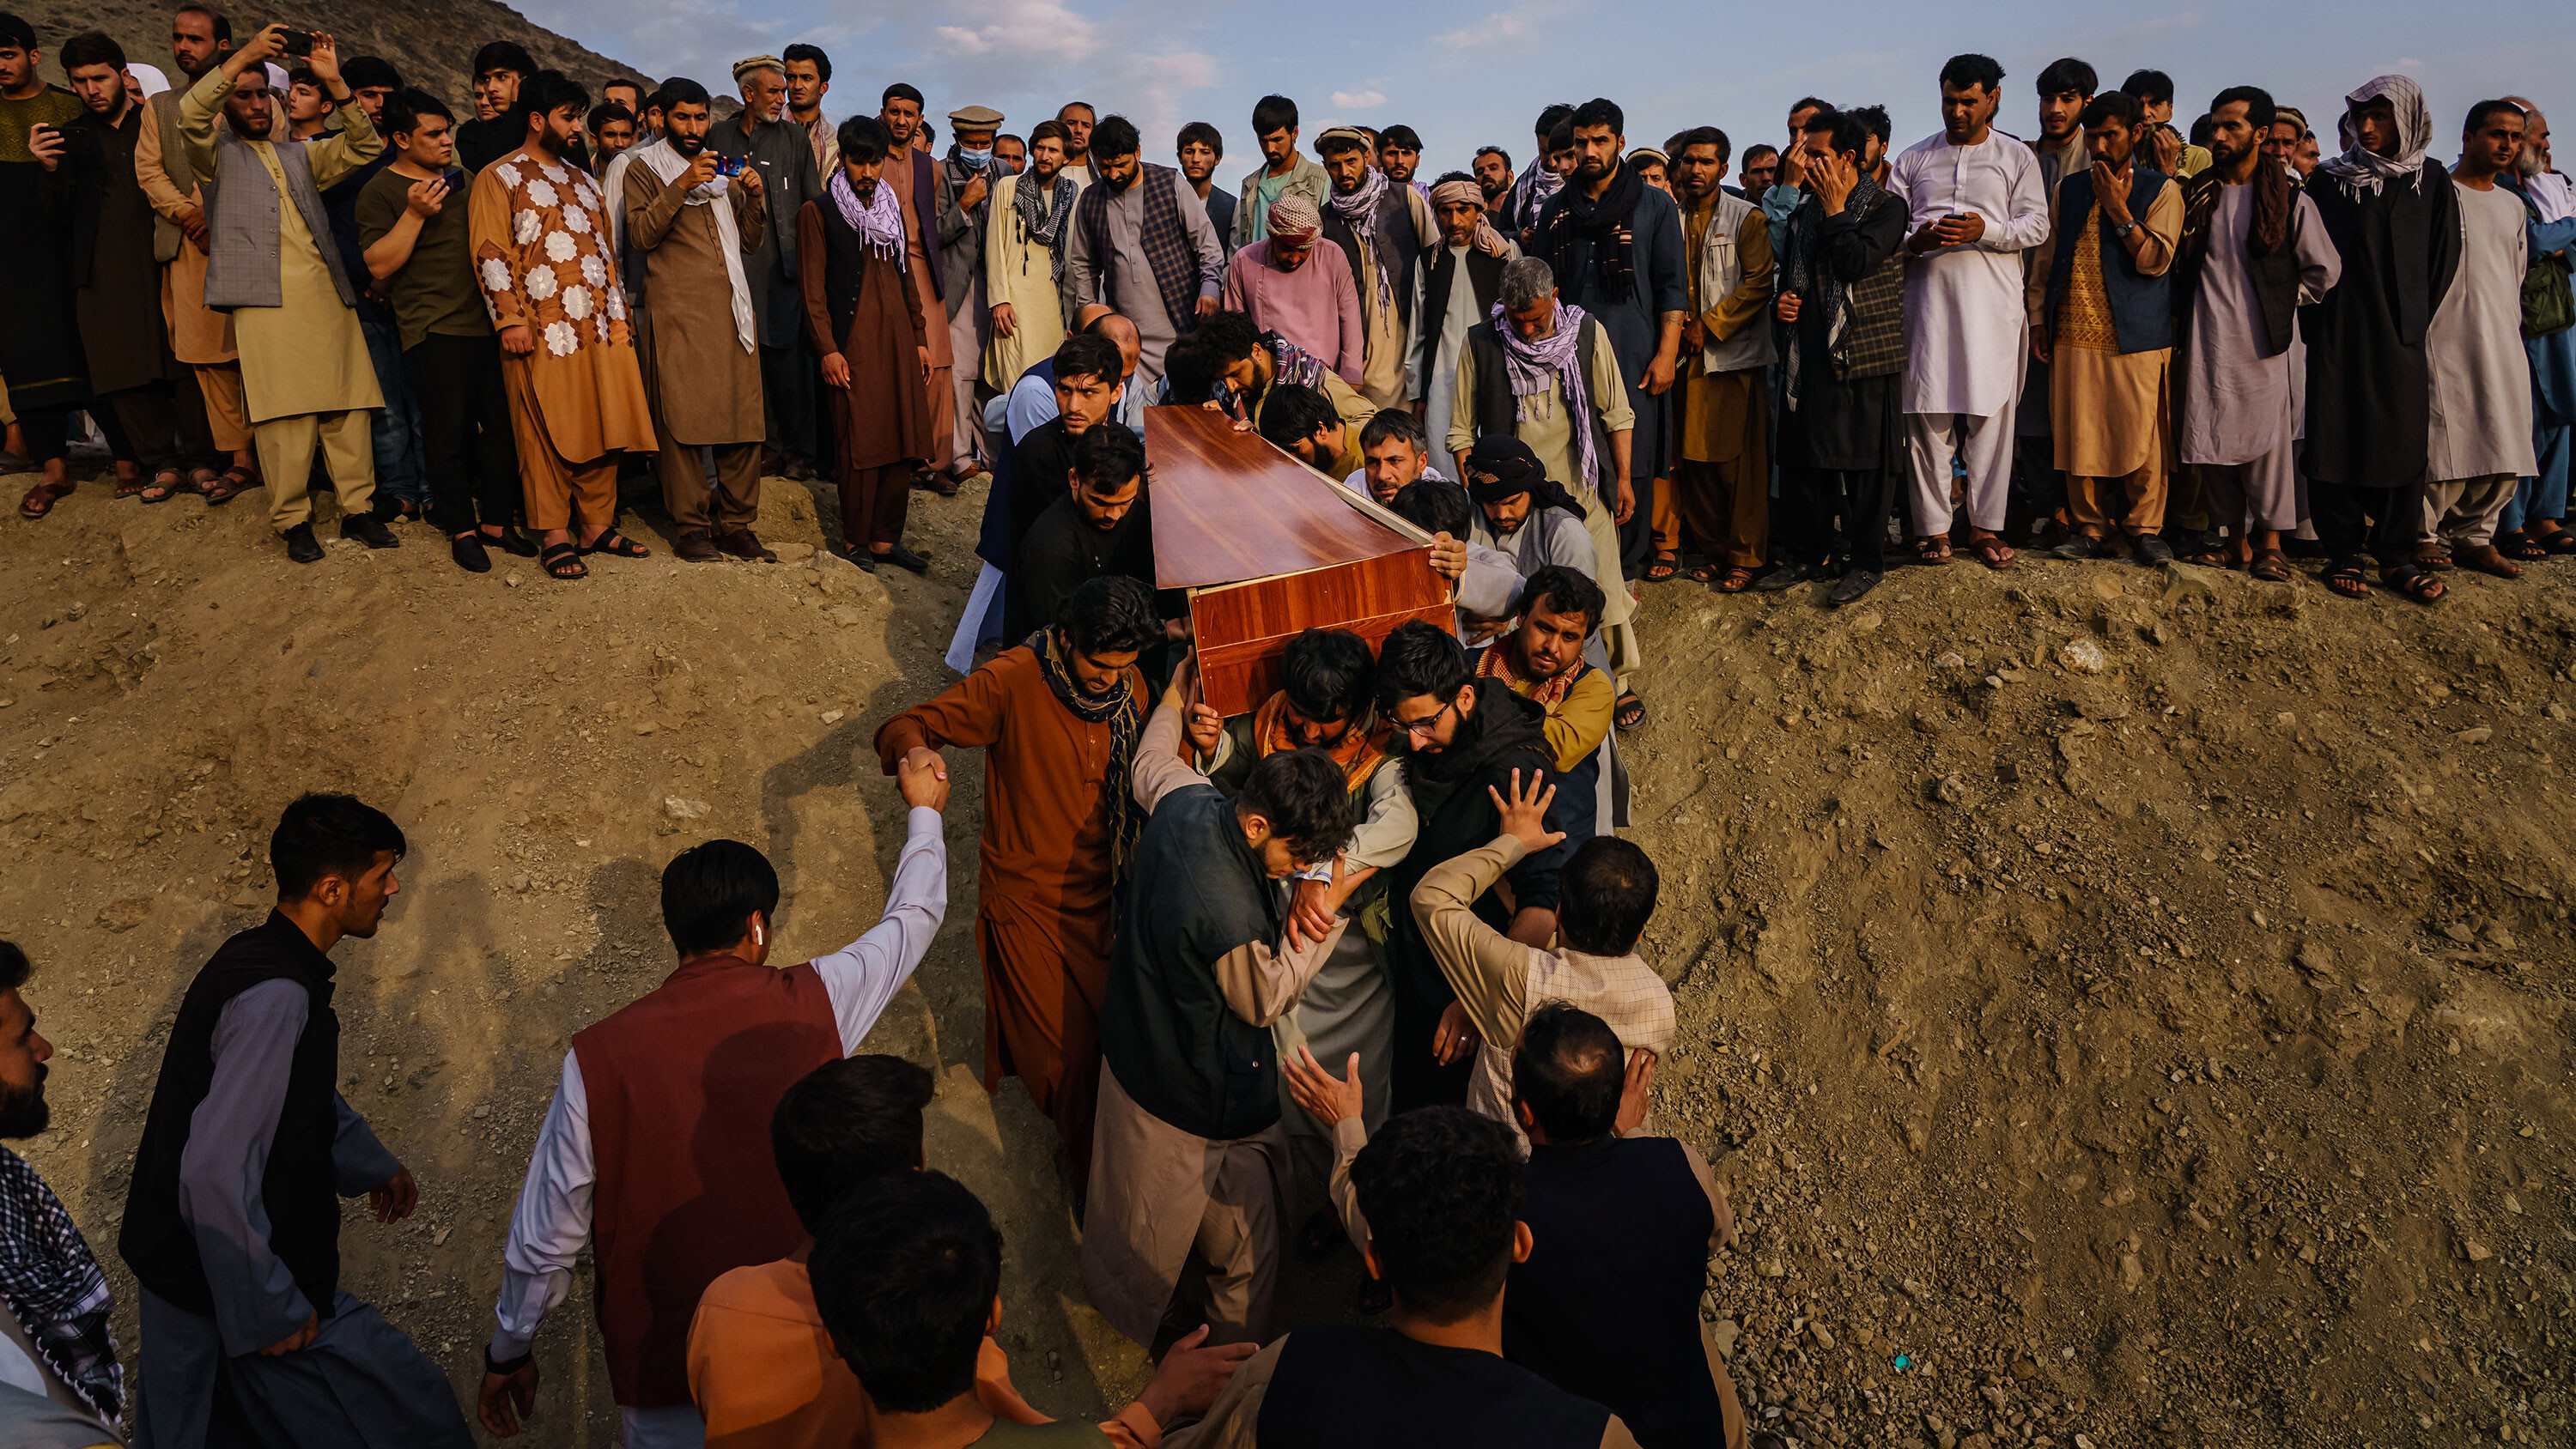 The war is 'not over for them:' Reporters, activists urge press to stay focused on Afghan civilians